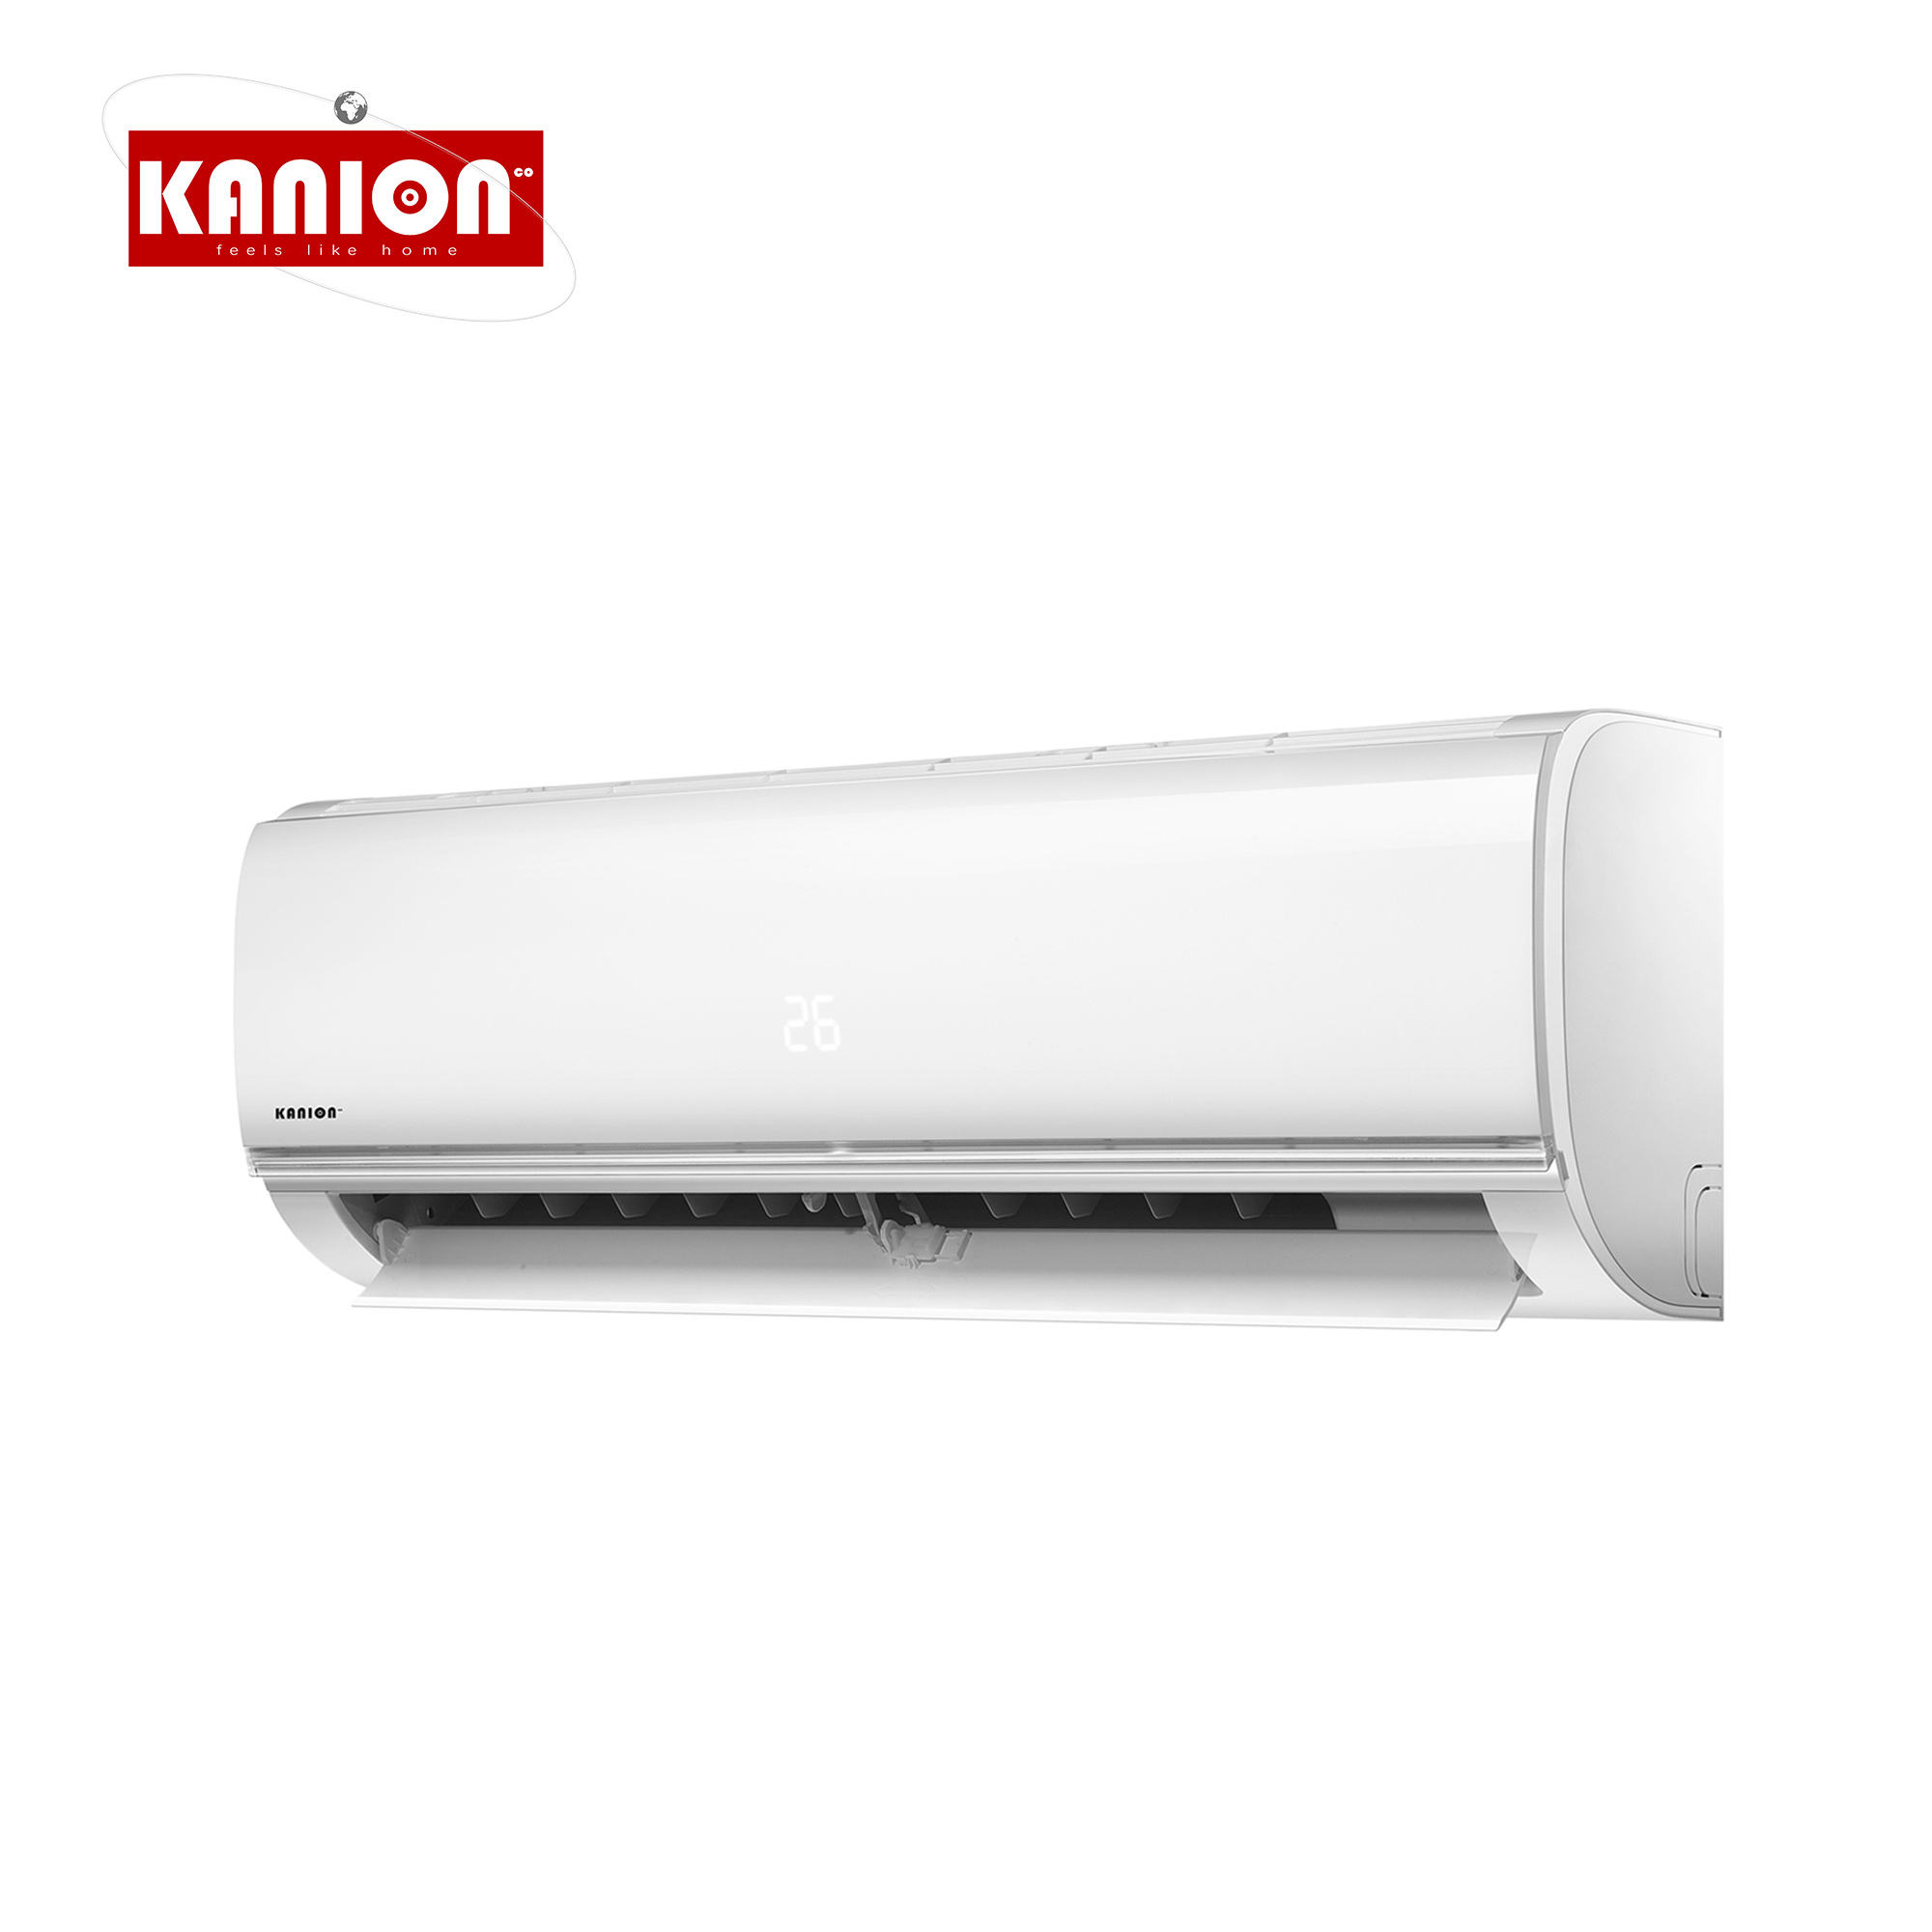 KANION mini split ac 1ton 12000BTU Cooling and Heating Inverter wall split type air conditioner